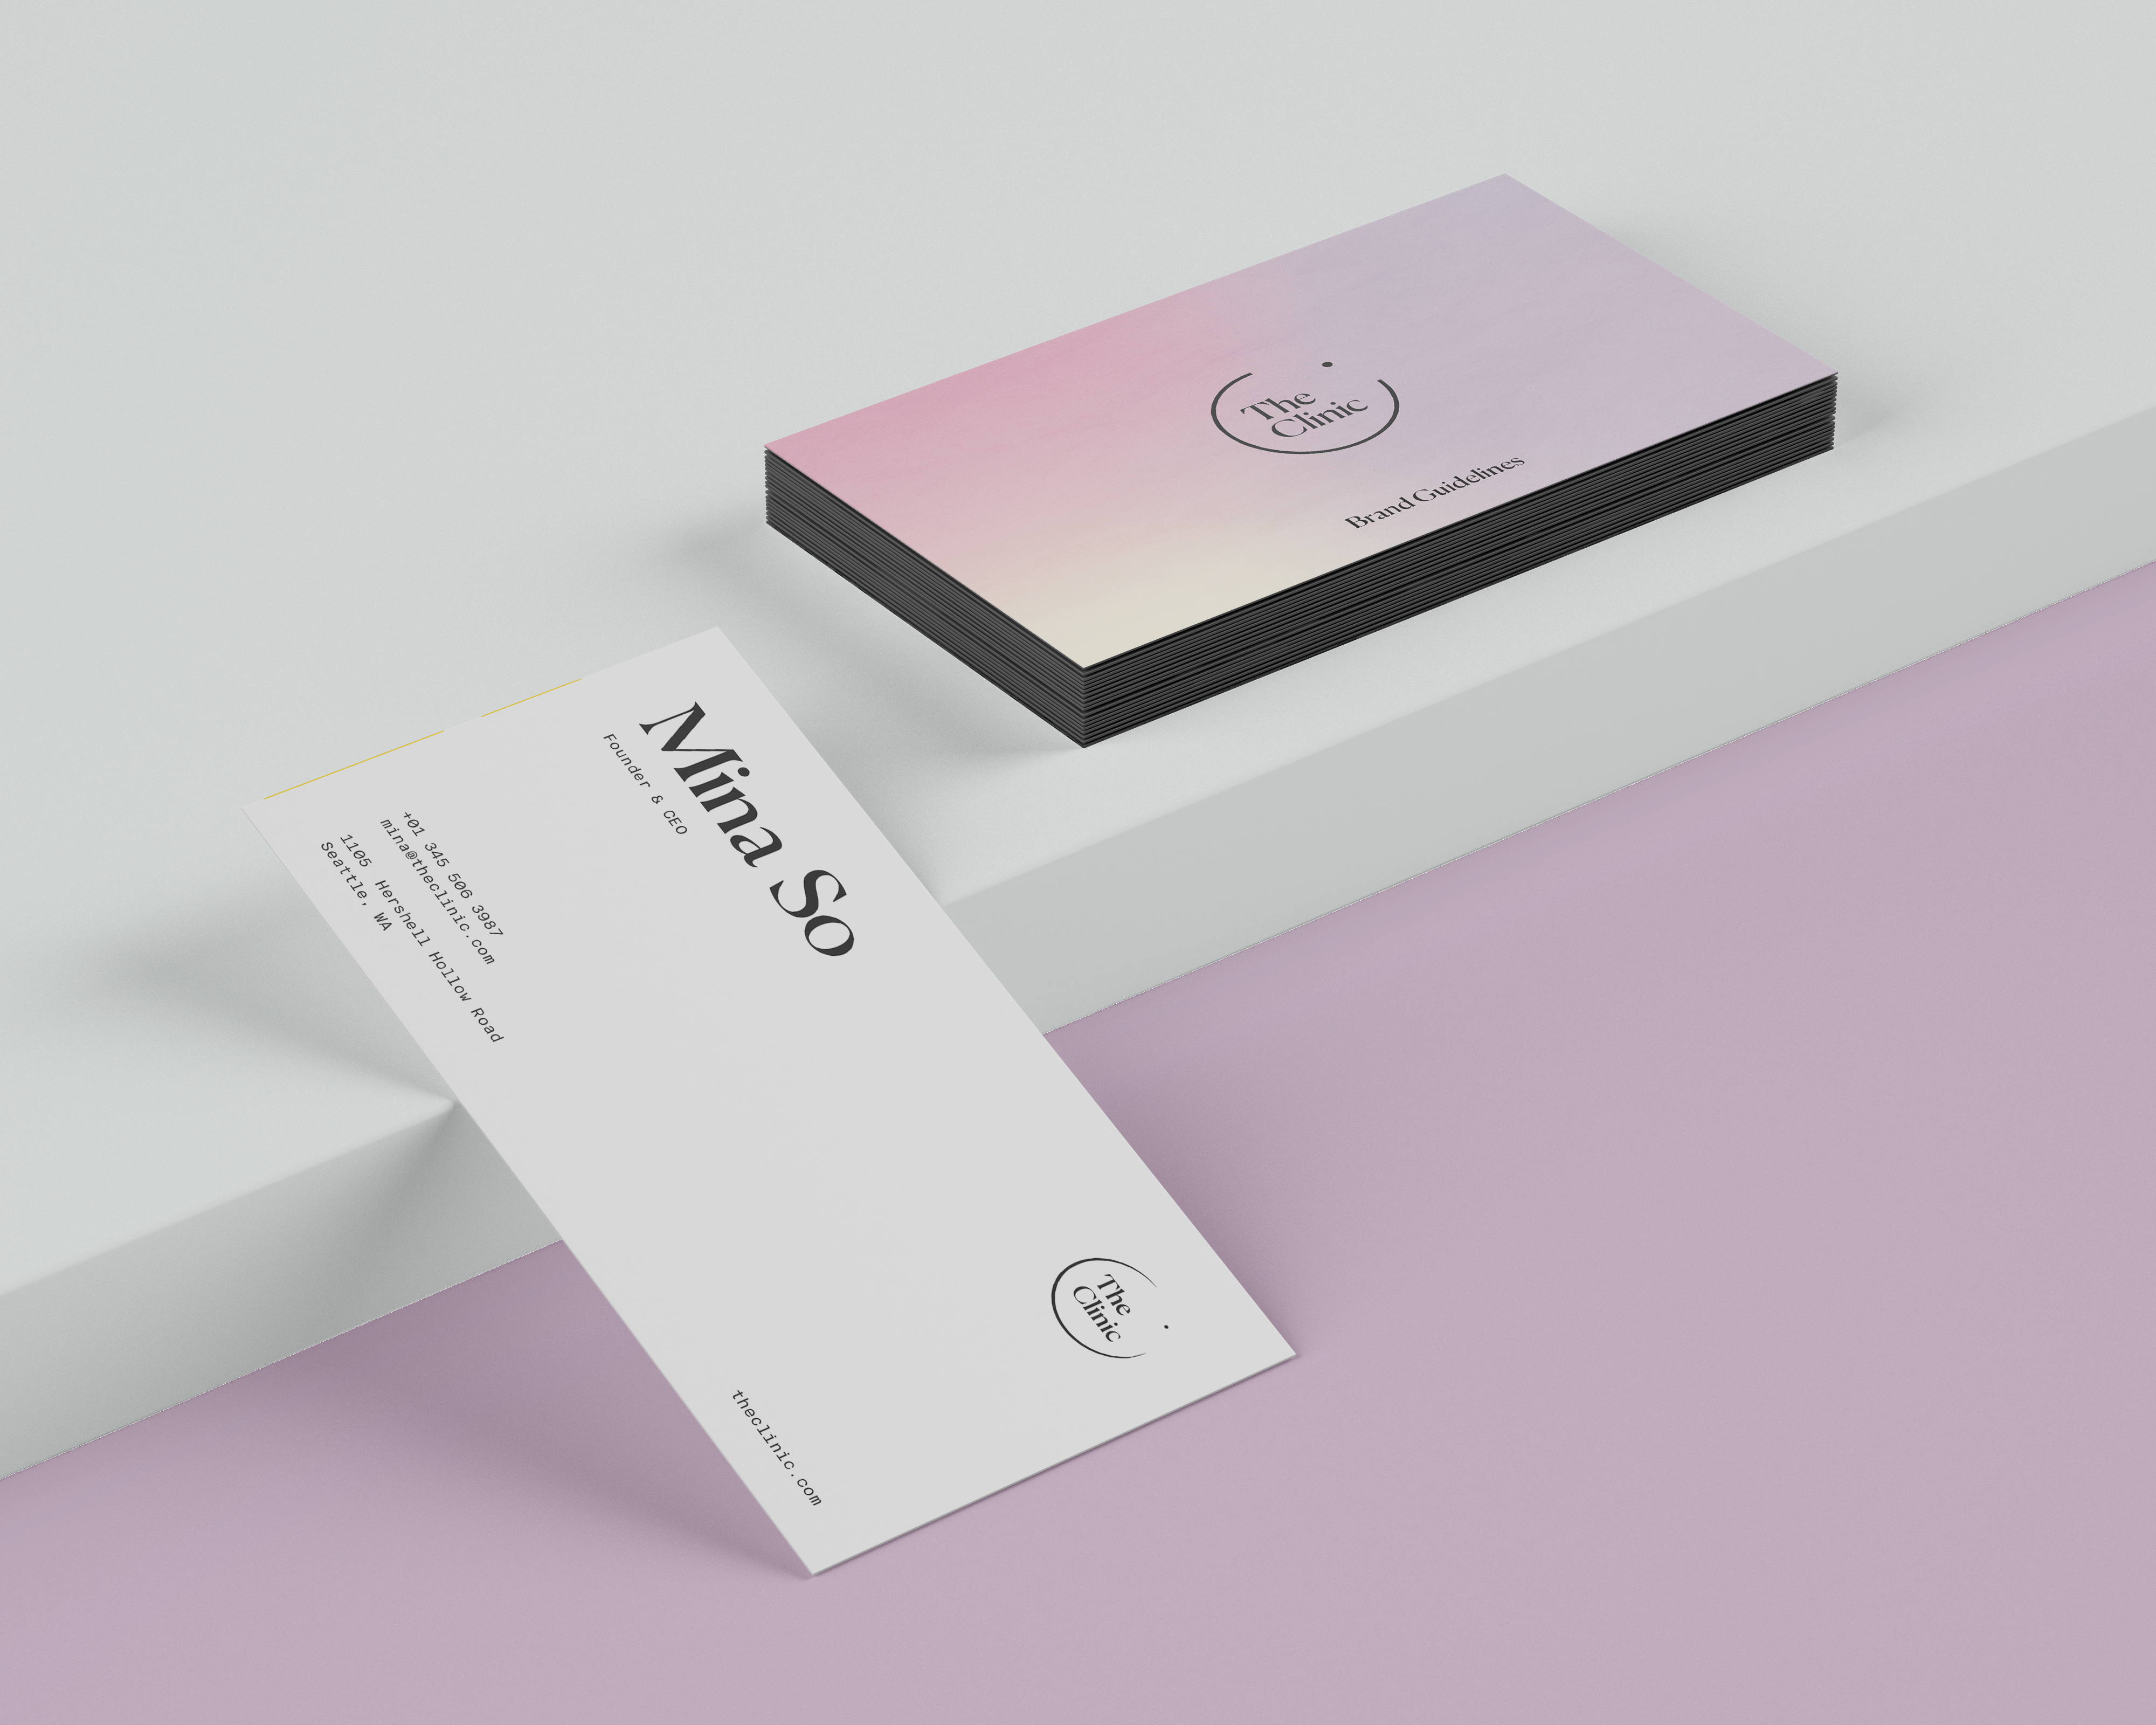 The Clinic Business Cards